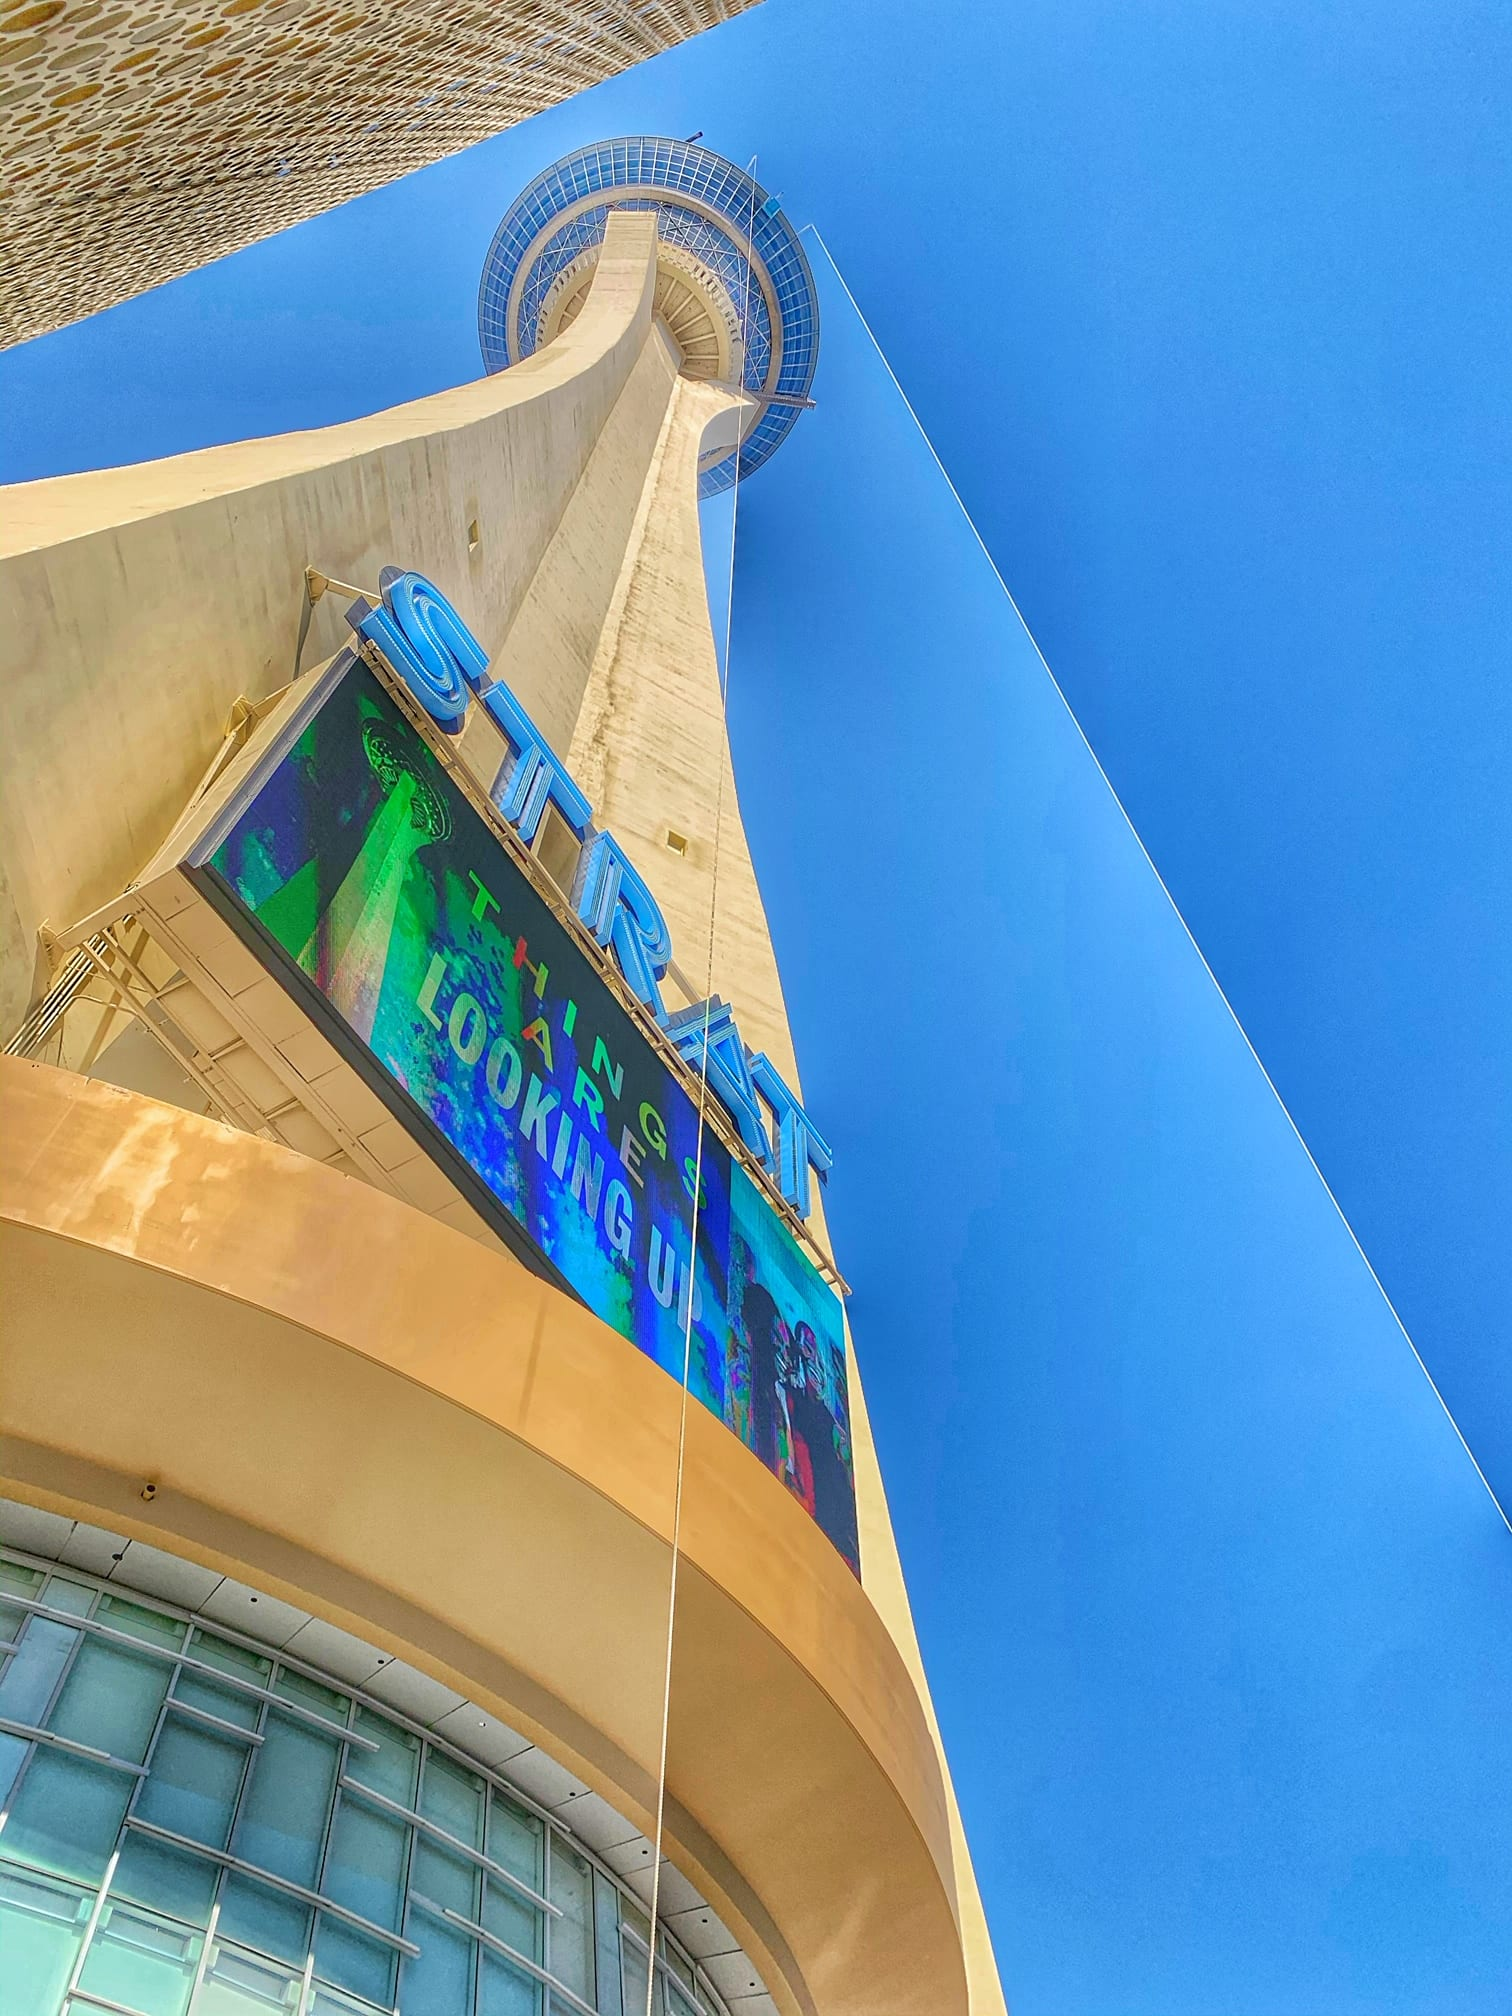 Sky diving at the Stratosphere las vegas